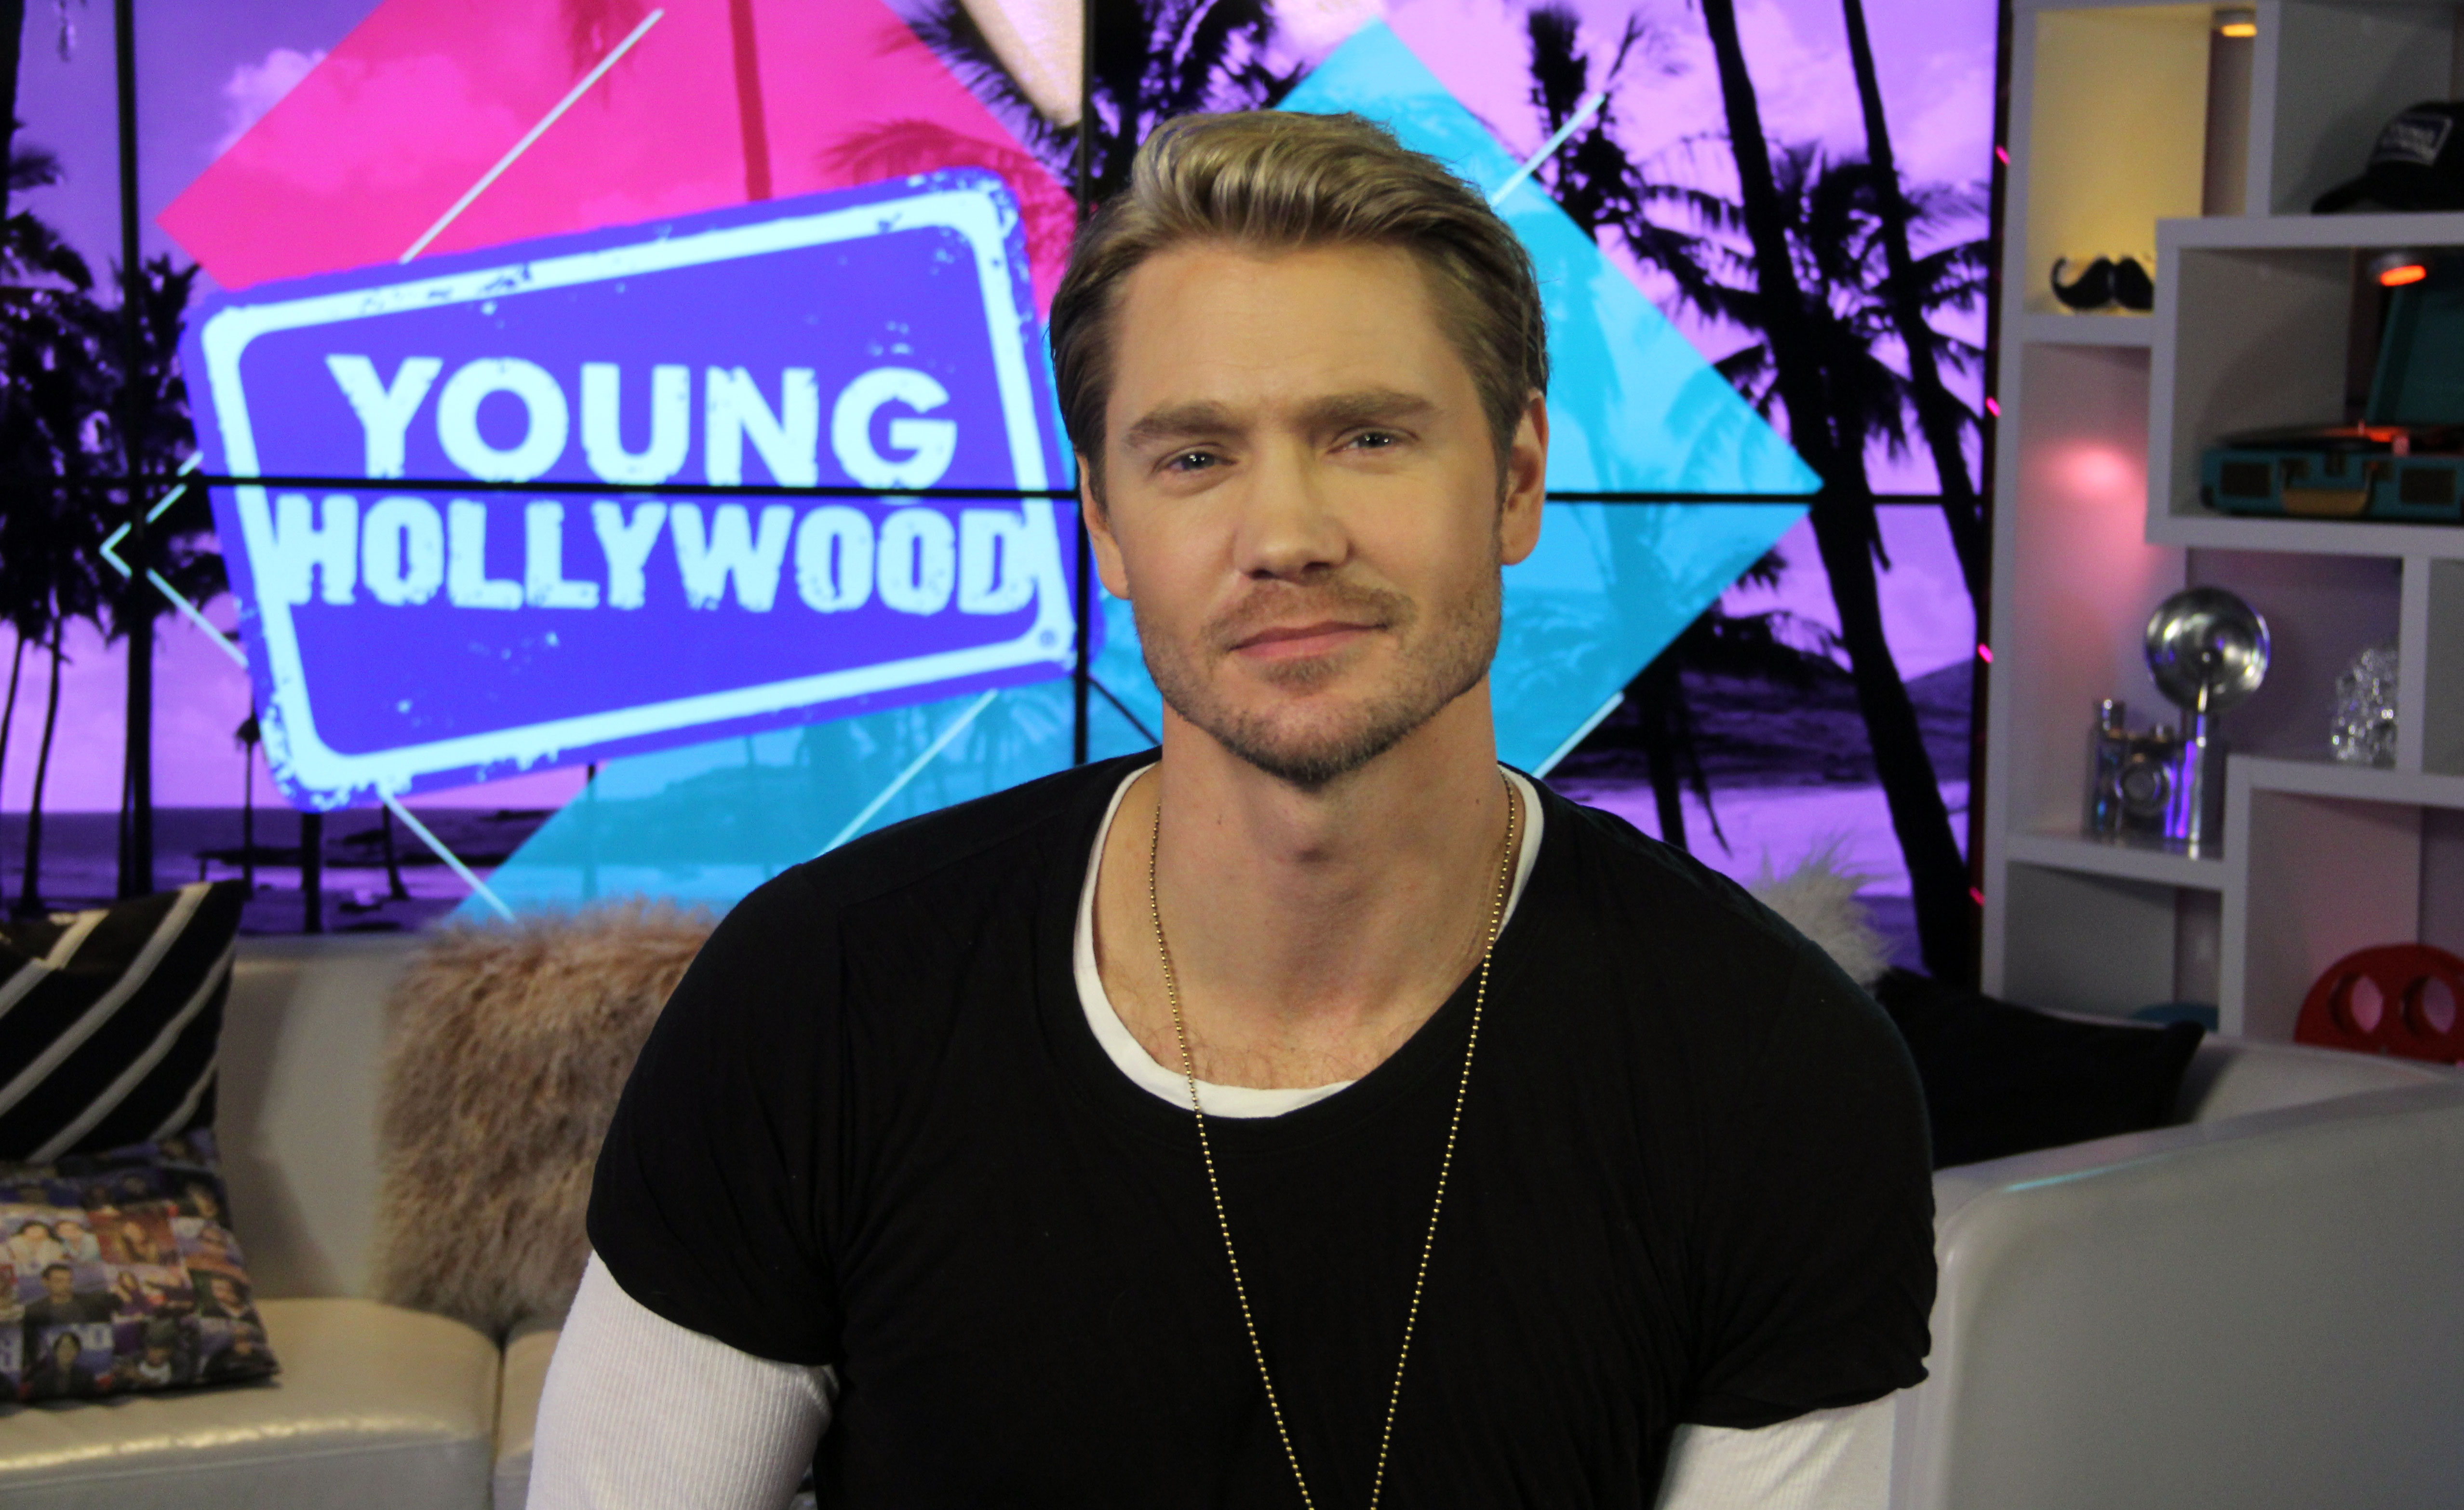 Chad Michael Murray Visits Young Hollywood Studio